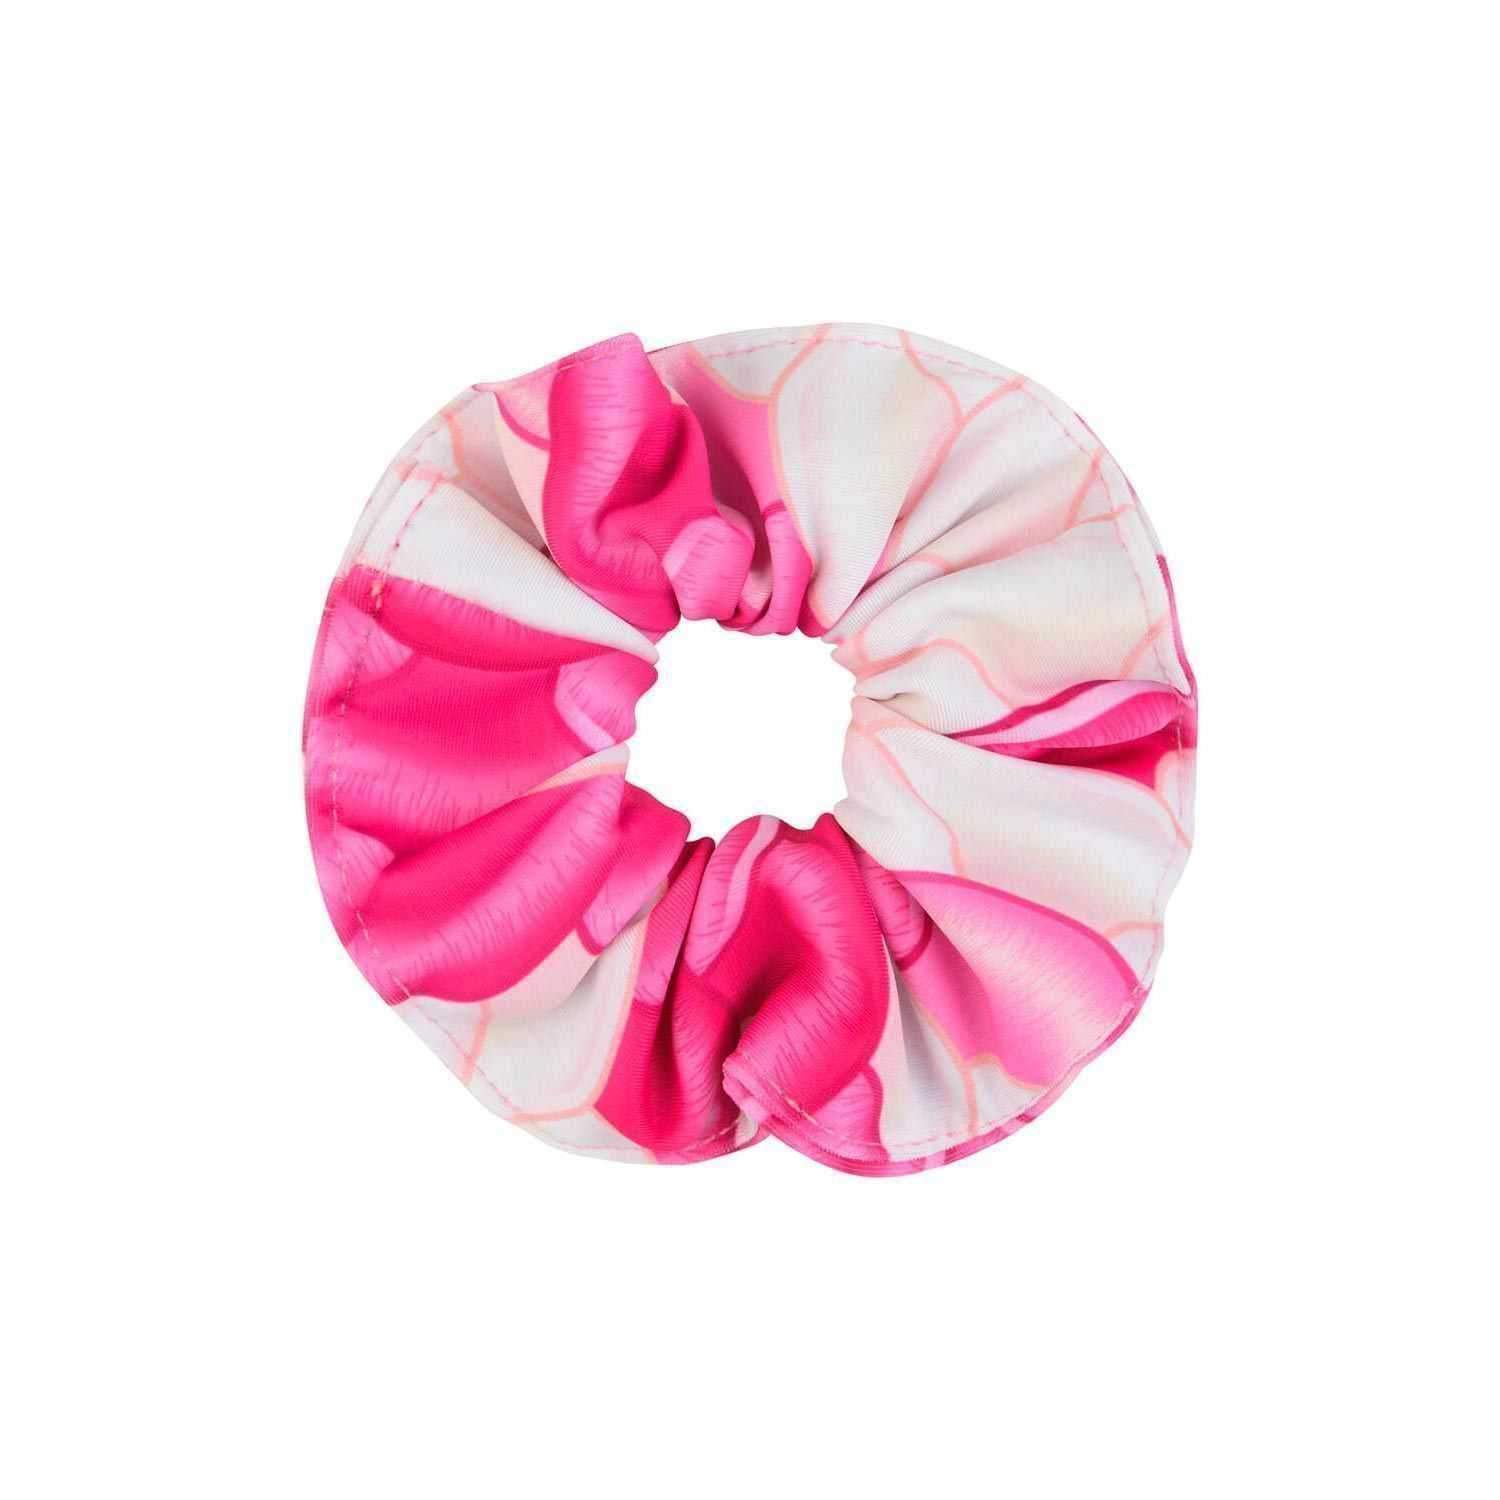 Chelsea Rose Pink Hair Scrunchie - Mermaids Tail UK